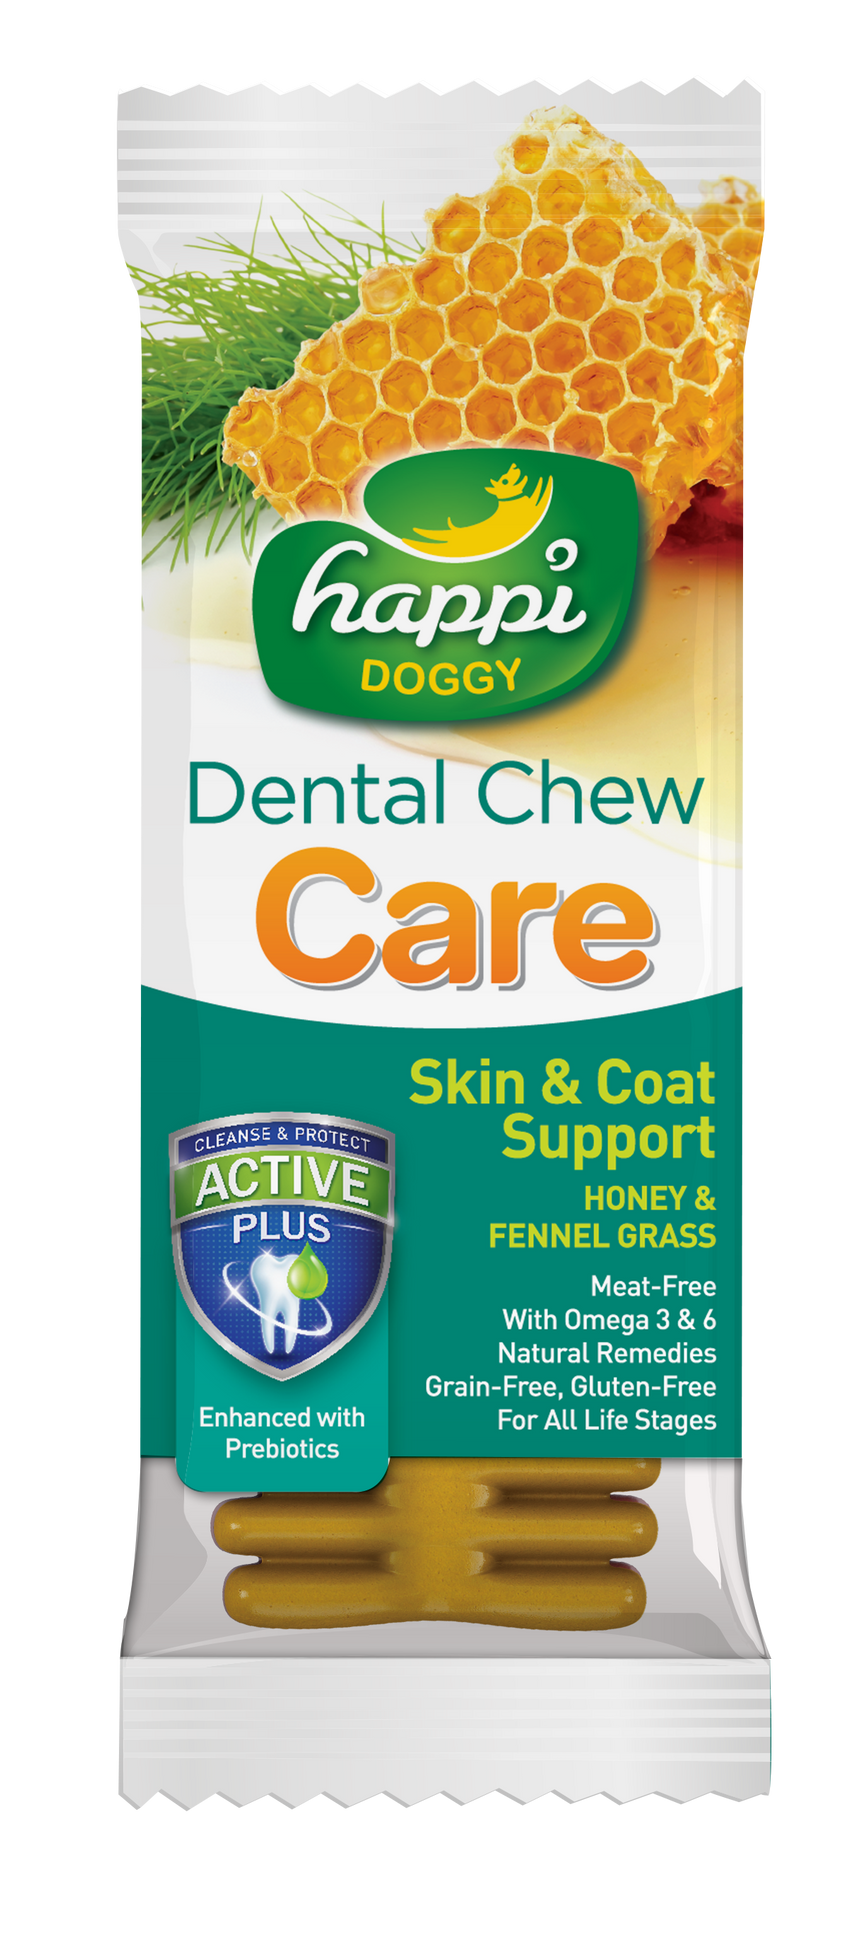 Happi Doggy Dental Chew Care (Skin & Coat Support) 4""